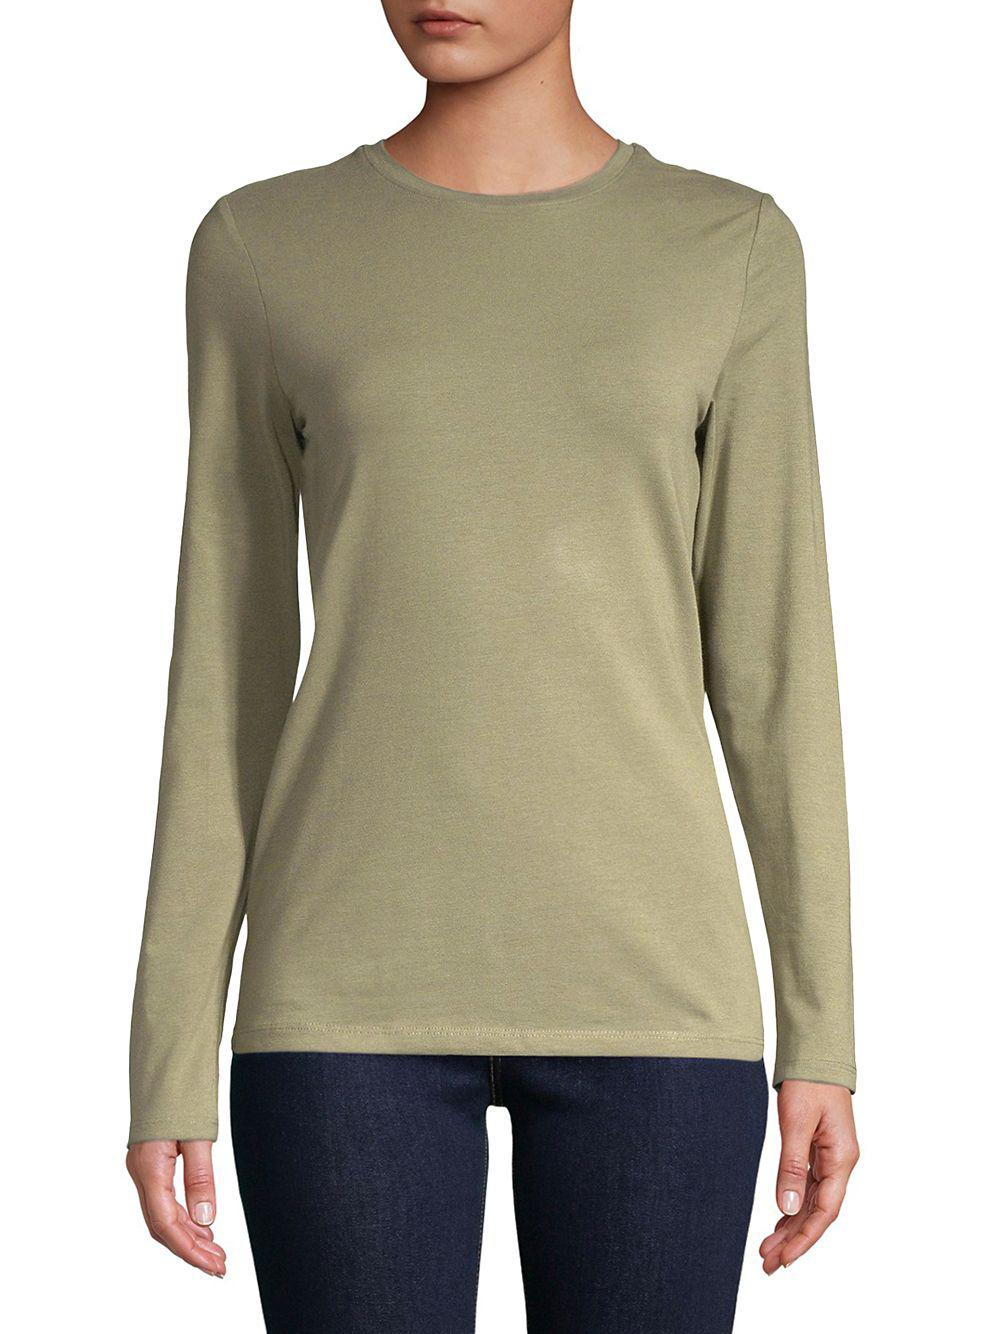 d413216056fb3 Lyst - Lord   Taylor Long-sleeve Stretch Top in Green